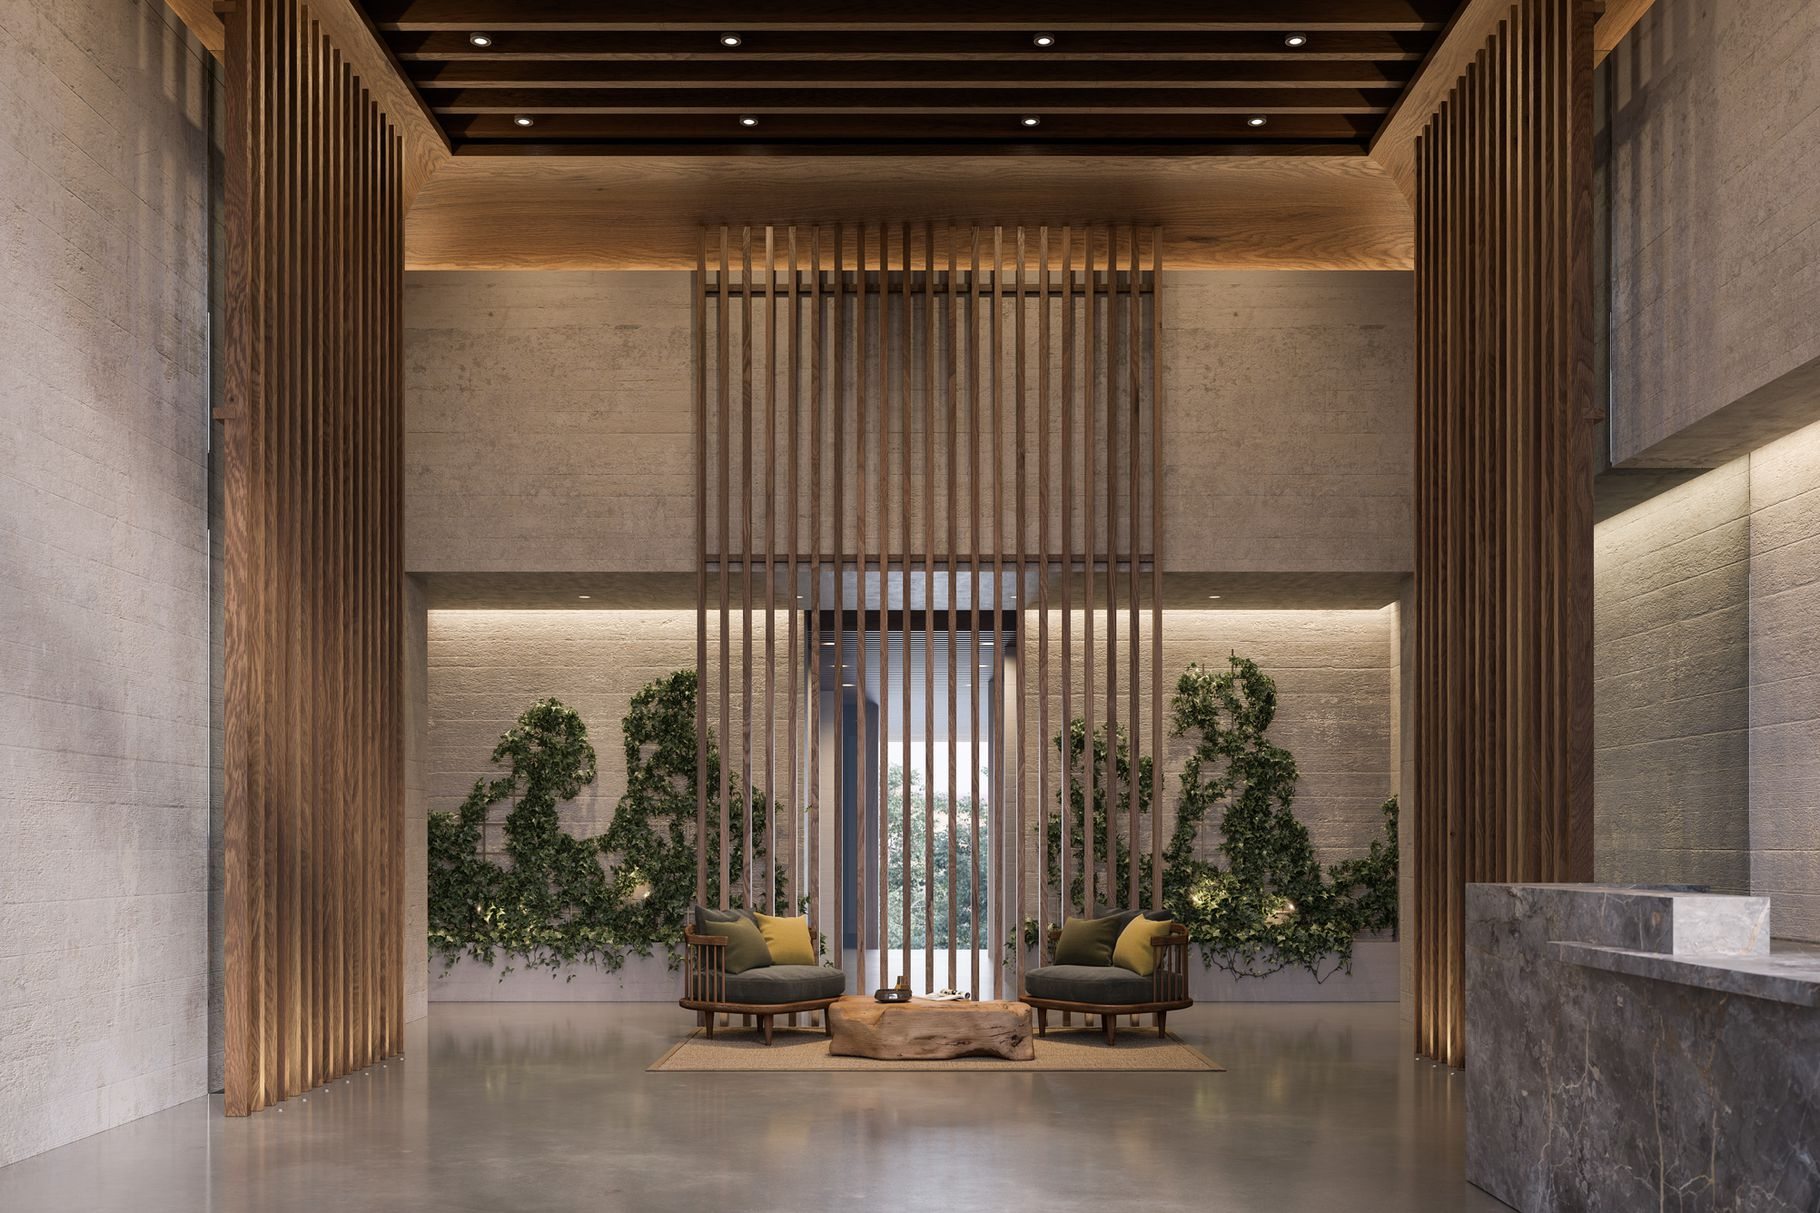 Adam American Real Estate & Slate Property Group Prepare To Launch Sales At The ODA New York-Designed Brooklyn Grove